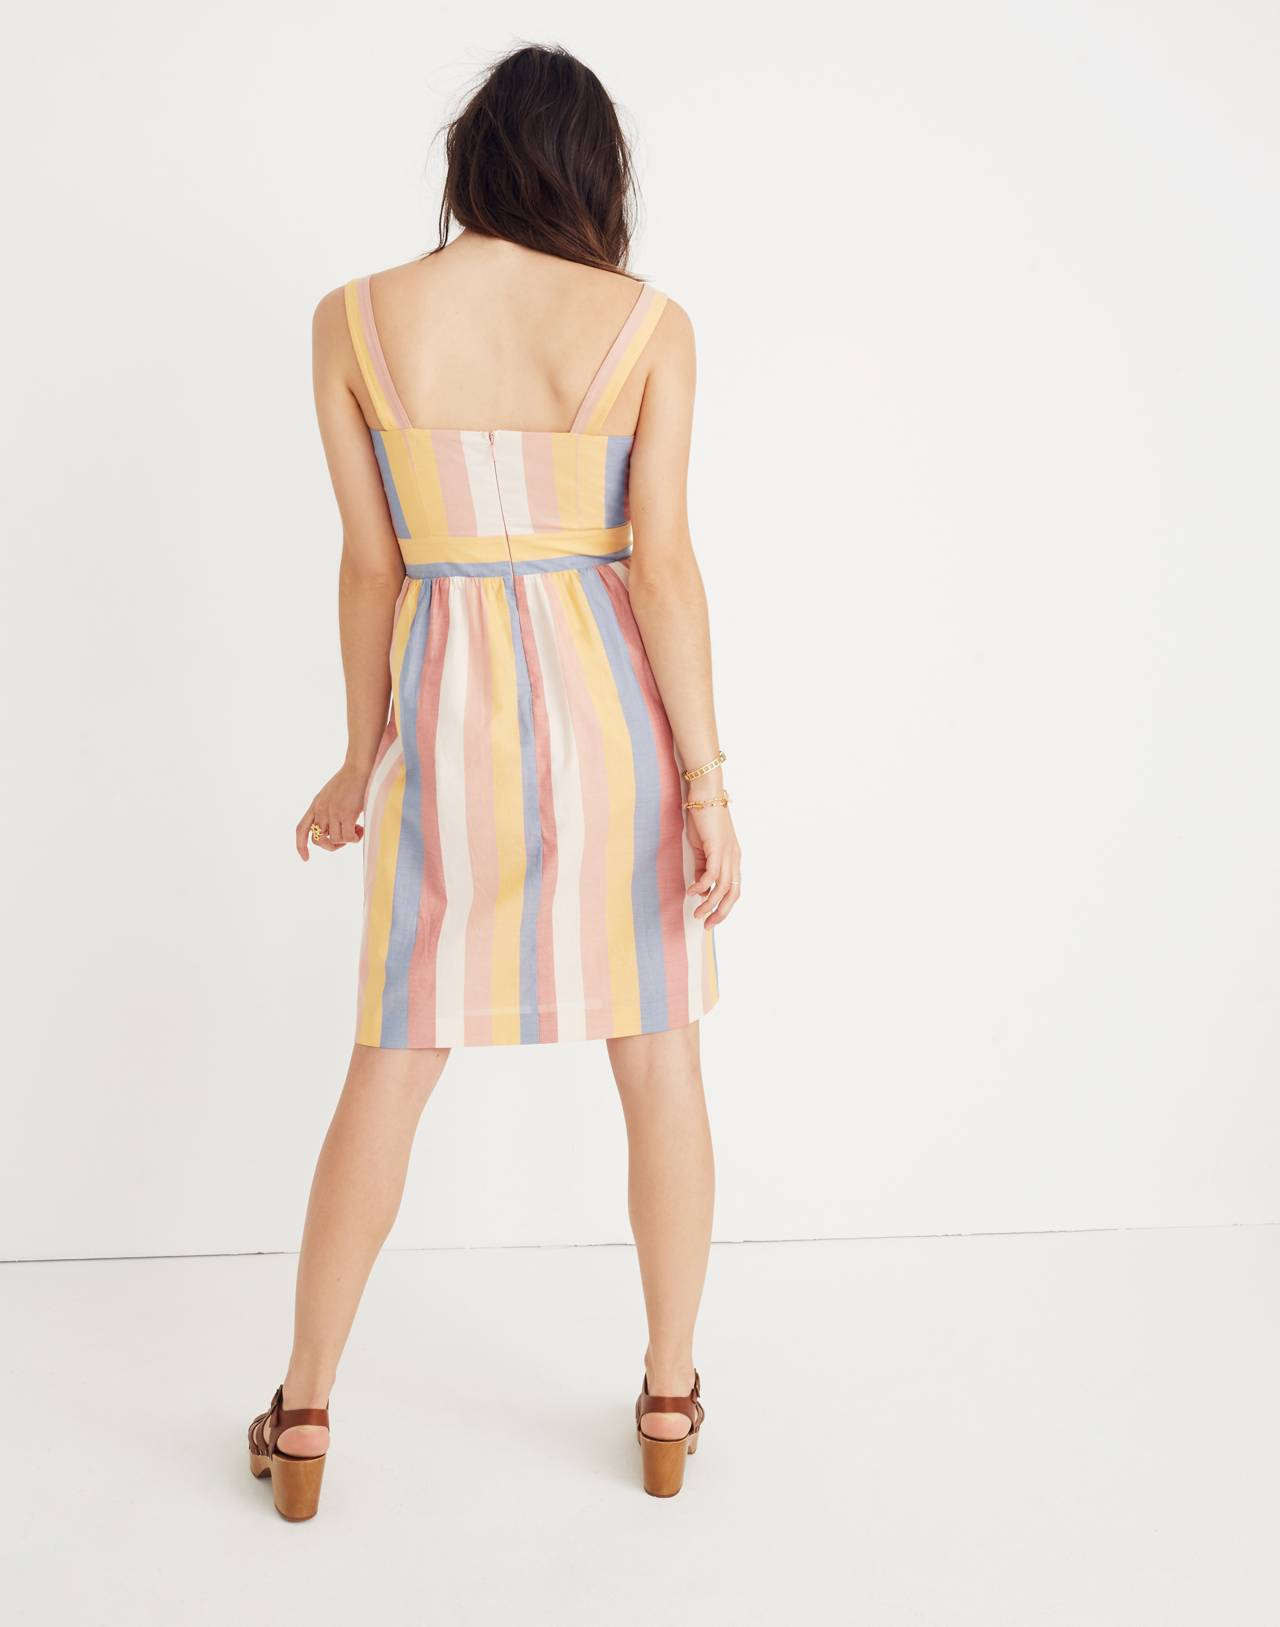 Tie-Front Cutout Dress in Sherbet Stripe in antique coral image 3